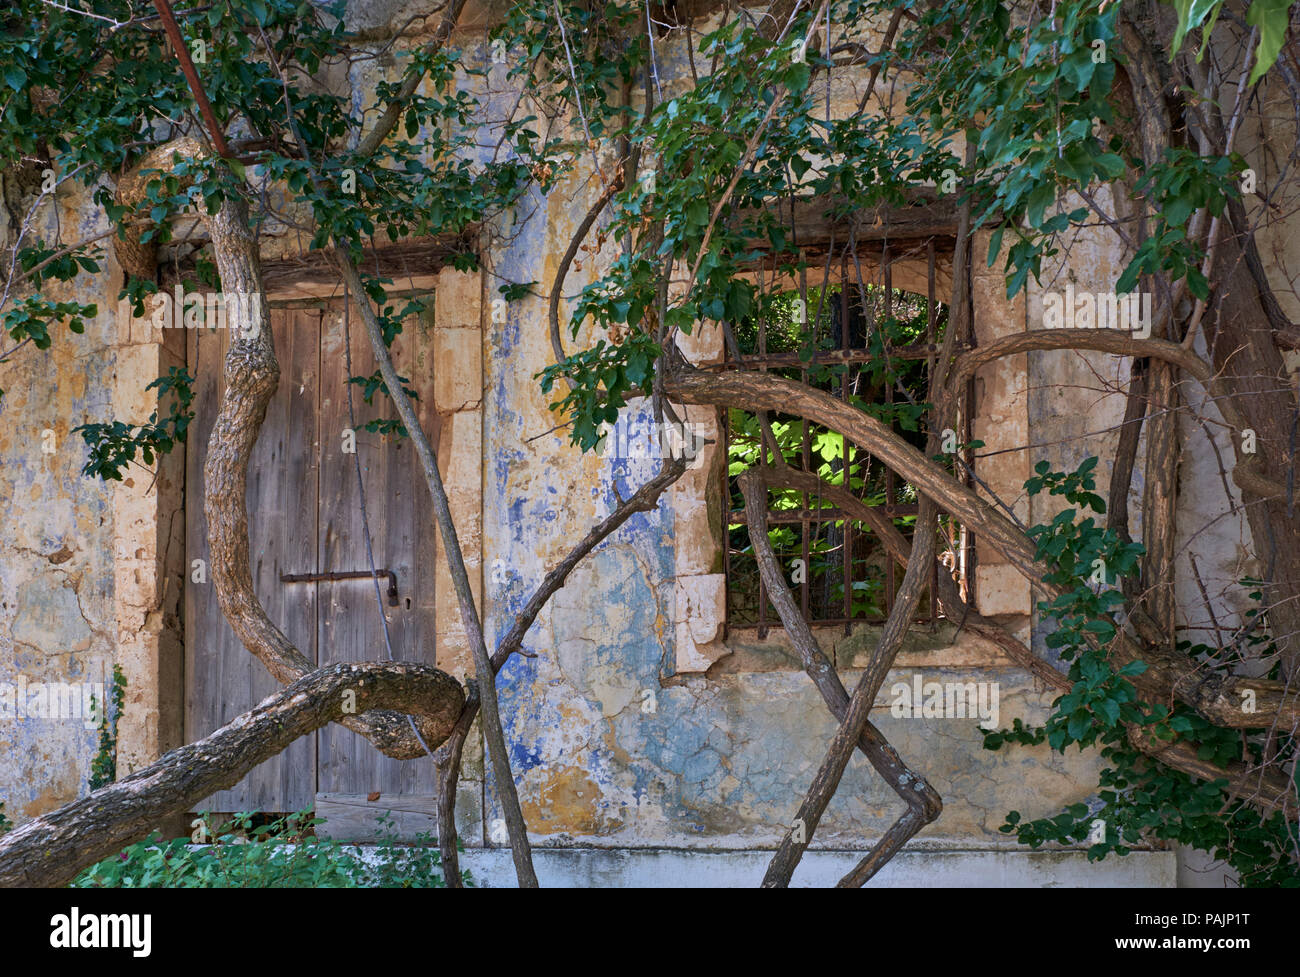 Old, earthquake damaged building in Assos. Cephalonia, Ionian Islands, Greece. - Stock Image